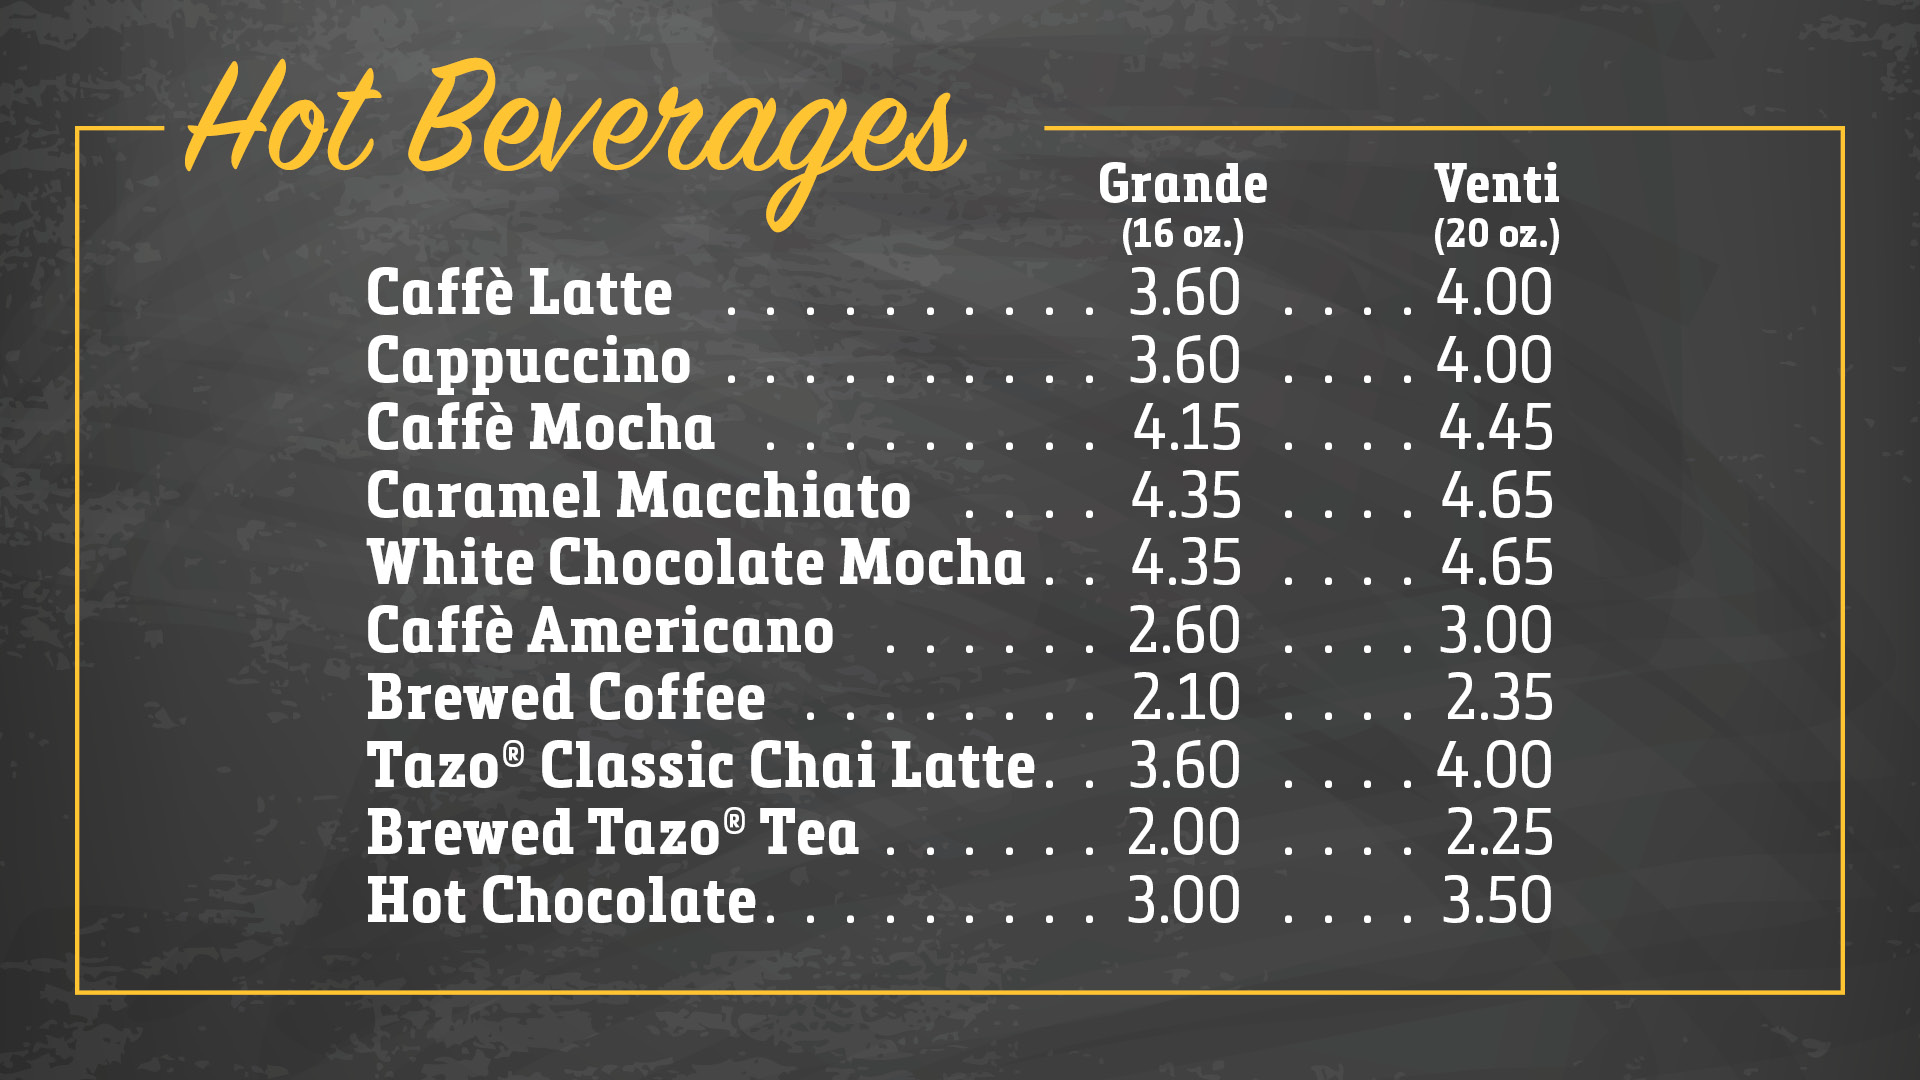 Hot Beverages menu